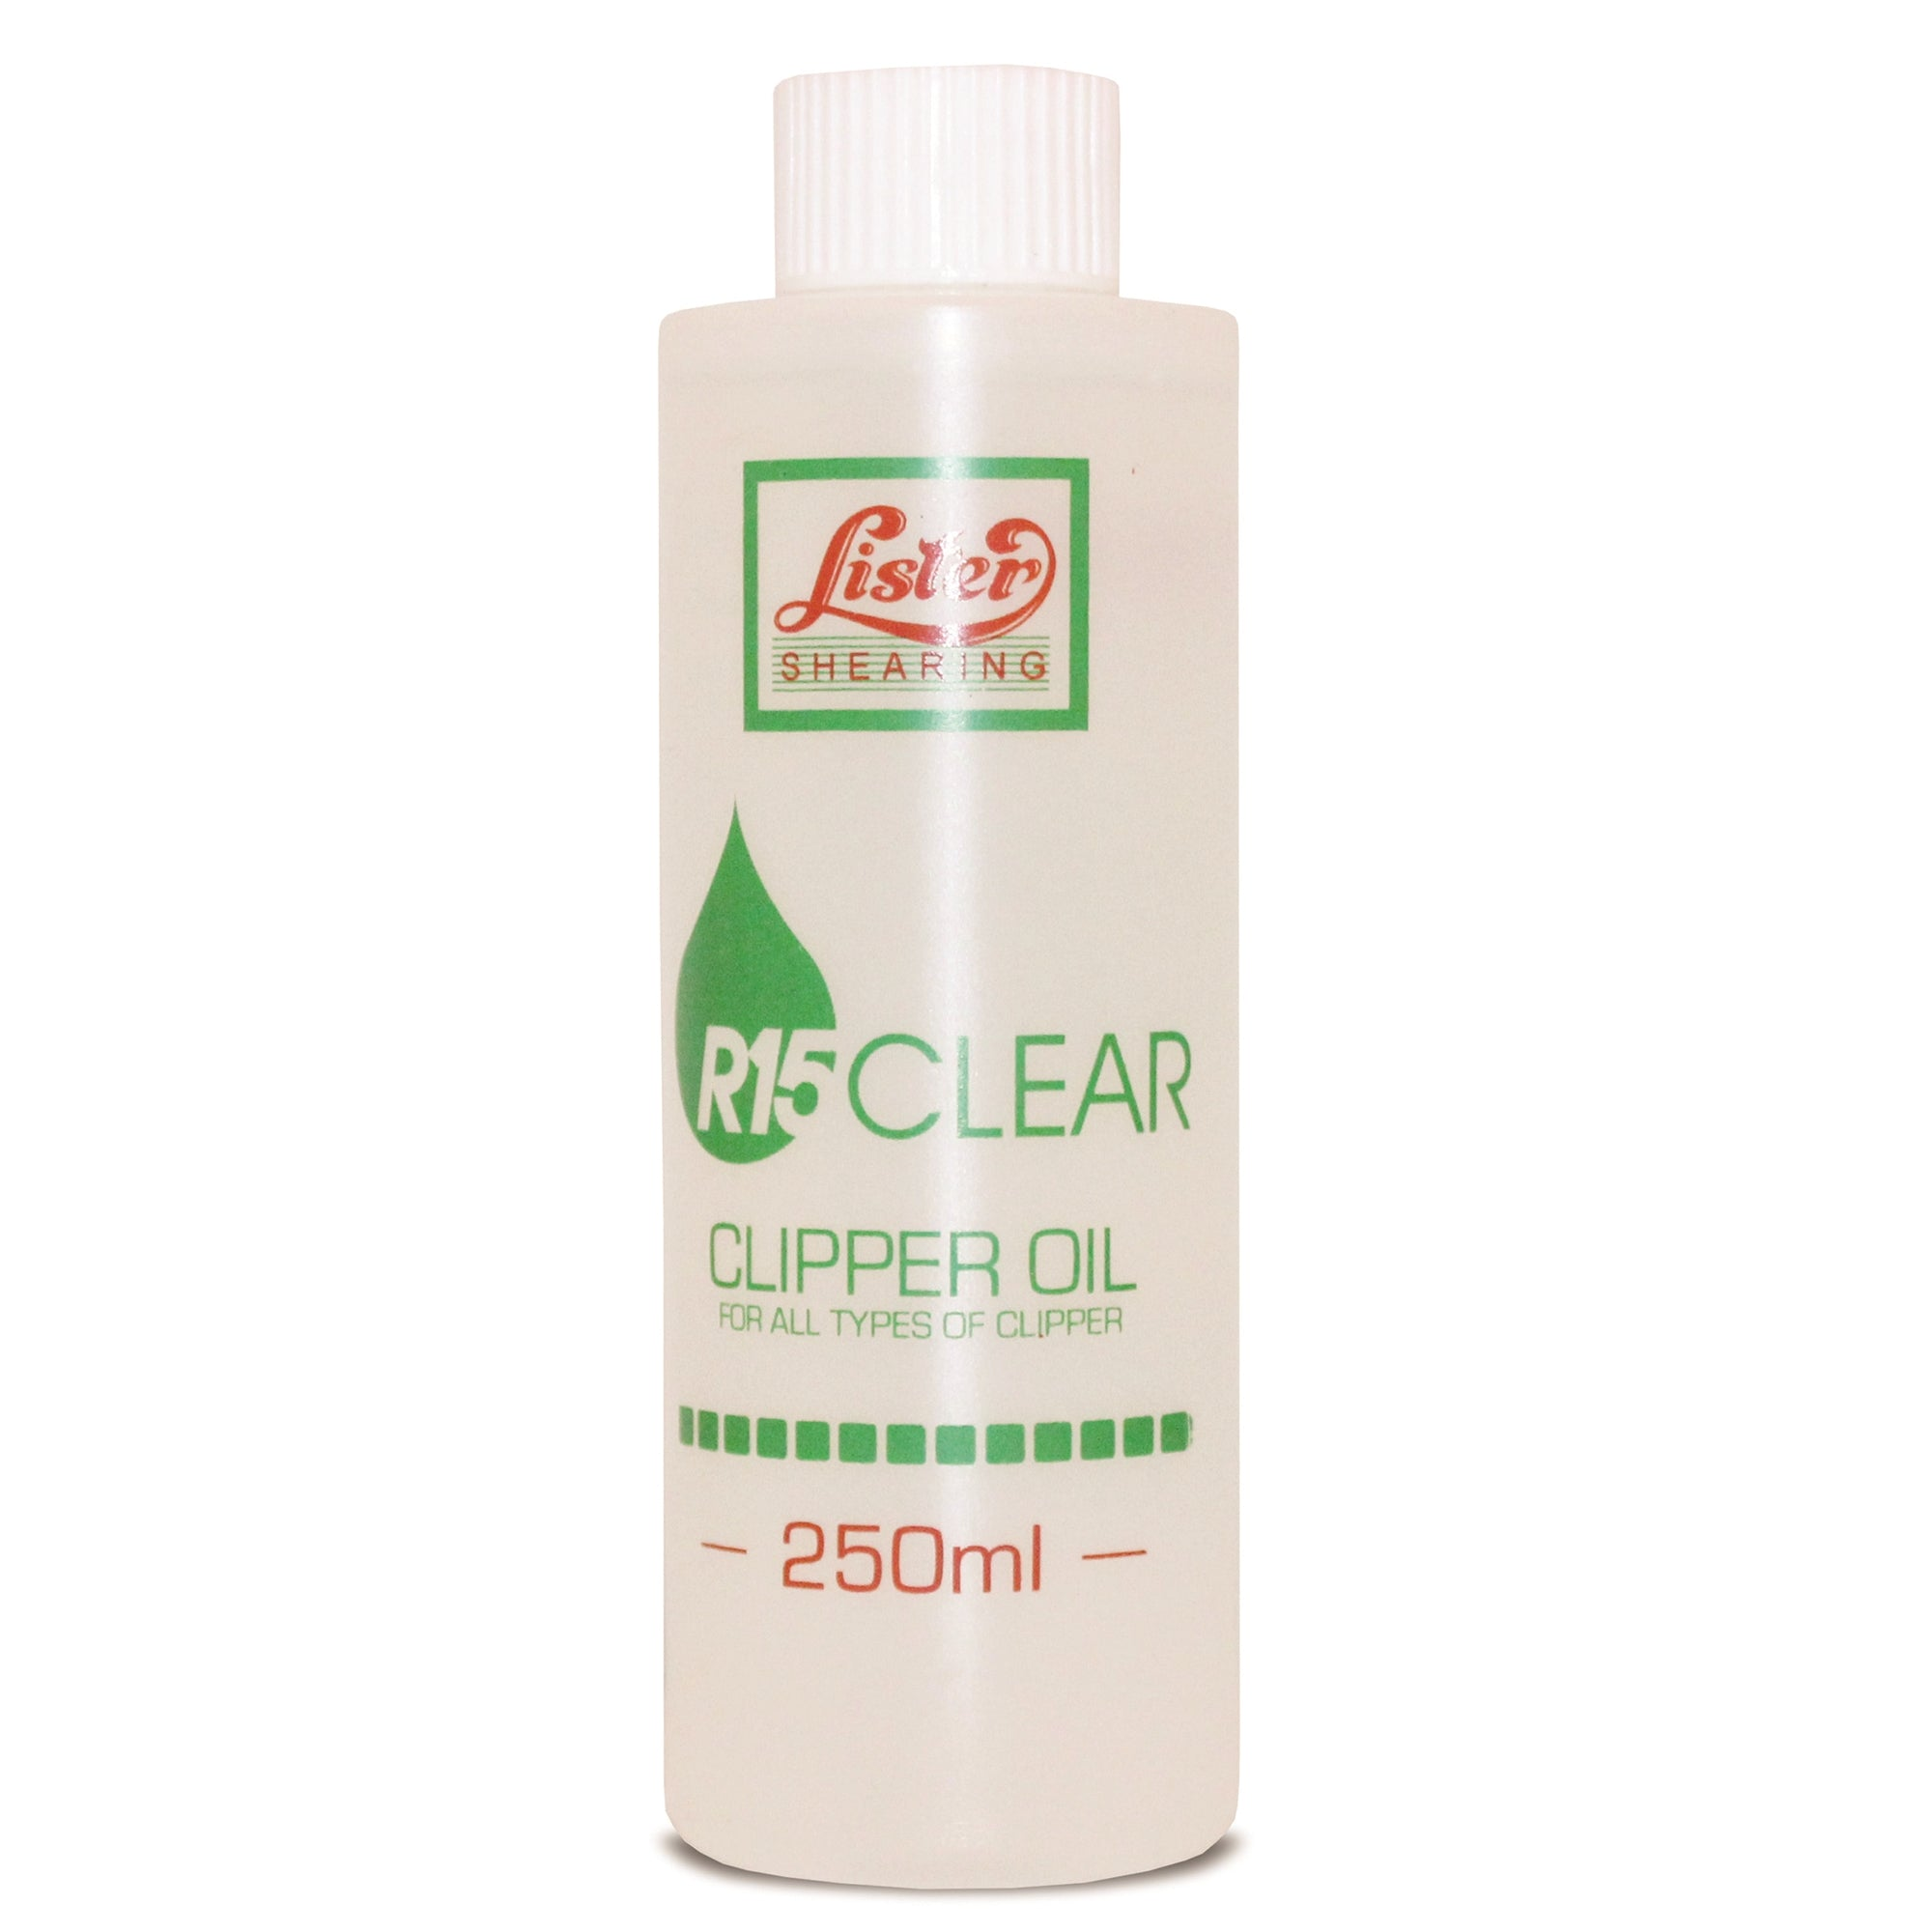 Lister R15 Clipper Oil